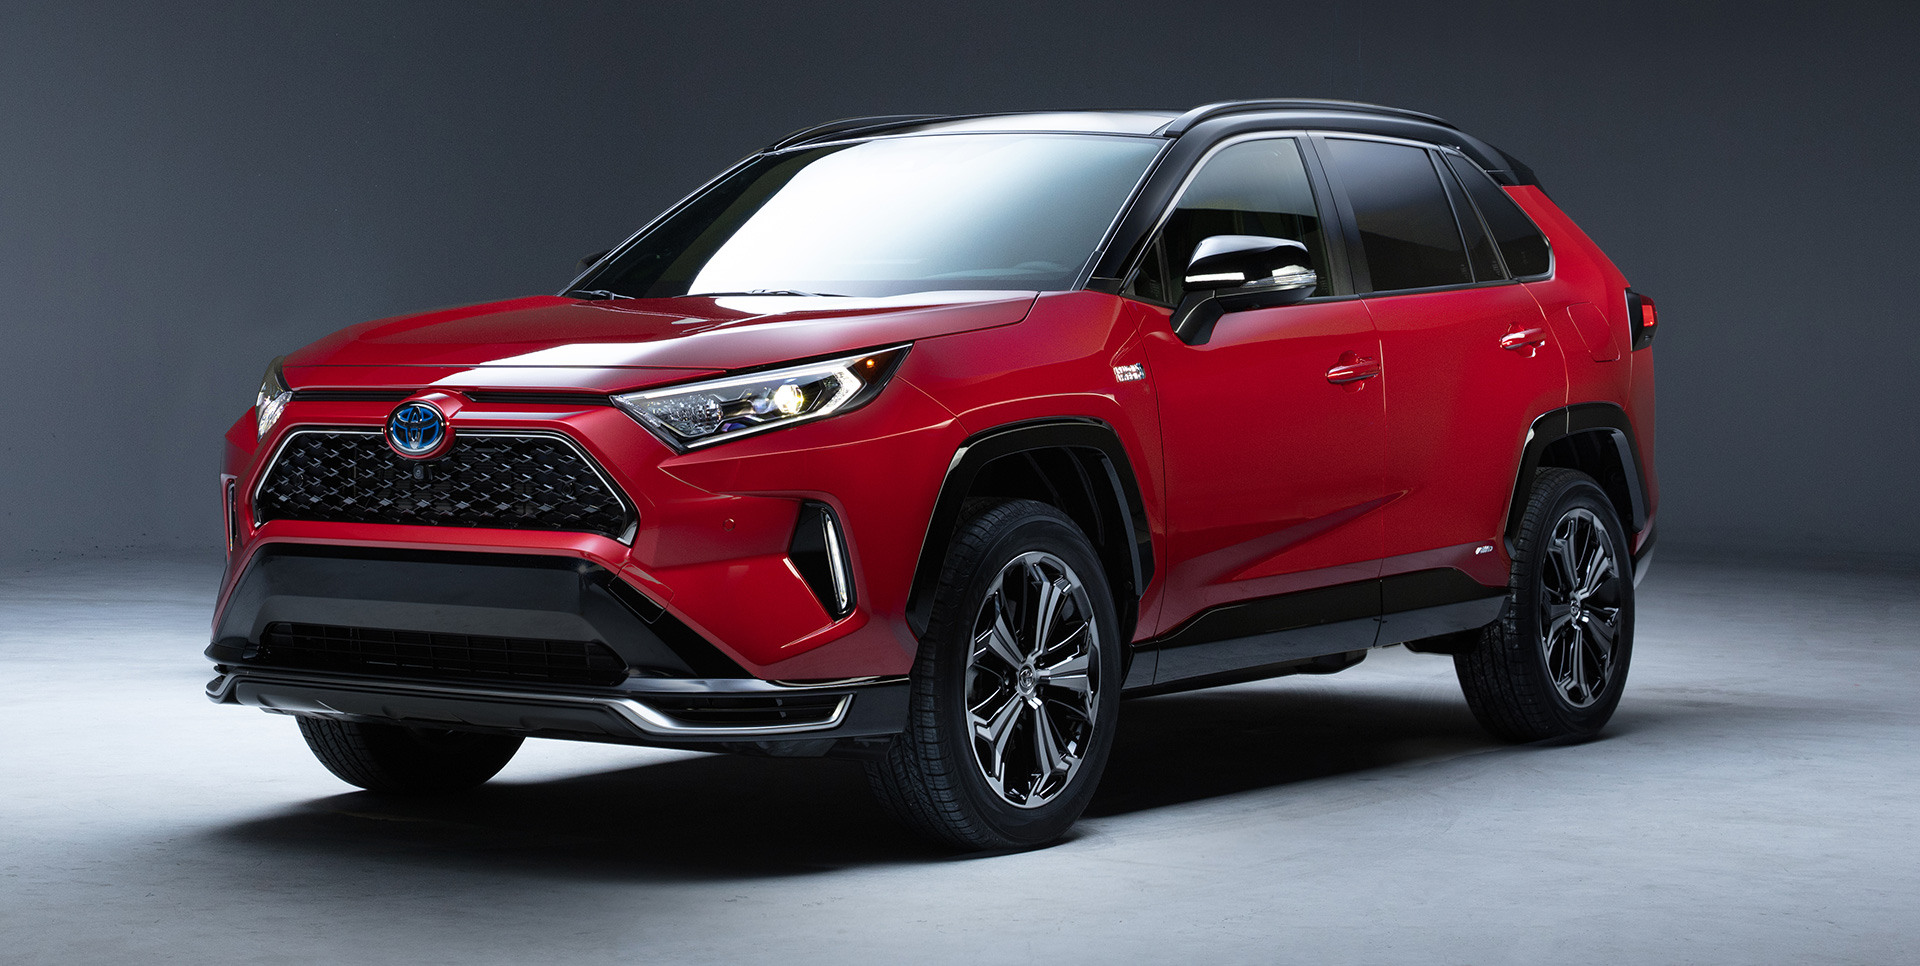 Toyota Revs Up Lineup With New 302 Horsepower Rav4 Prime Toyota Global Newsroom Toyota Motor Corporation Official Global Website